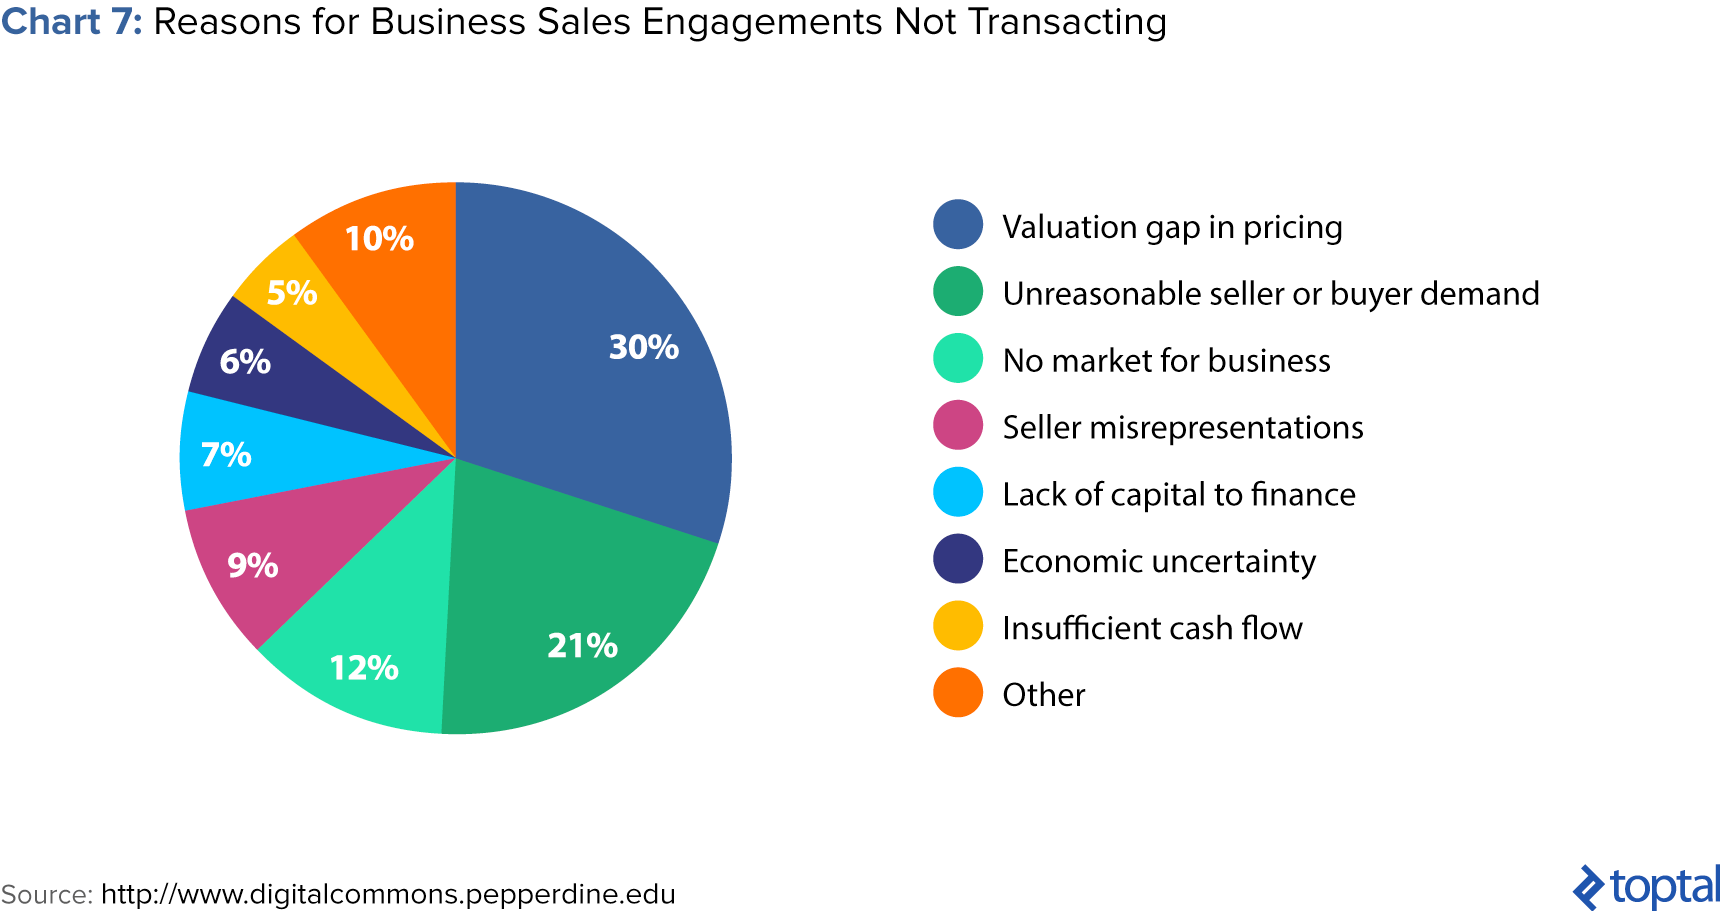 Chart 7: Reasons for Business Sales Engagements Not Transacting